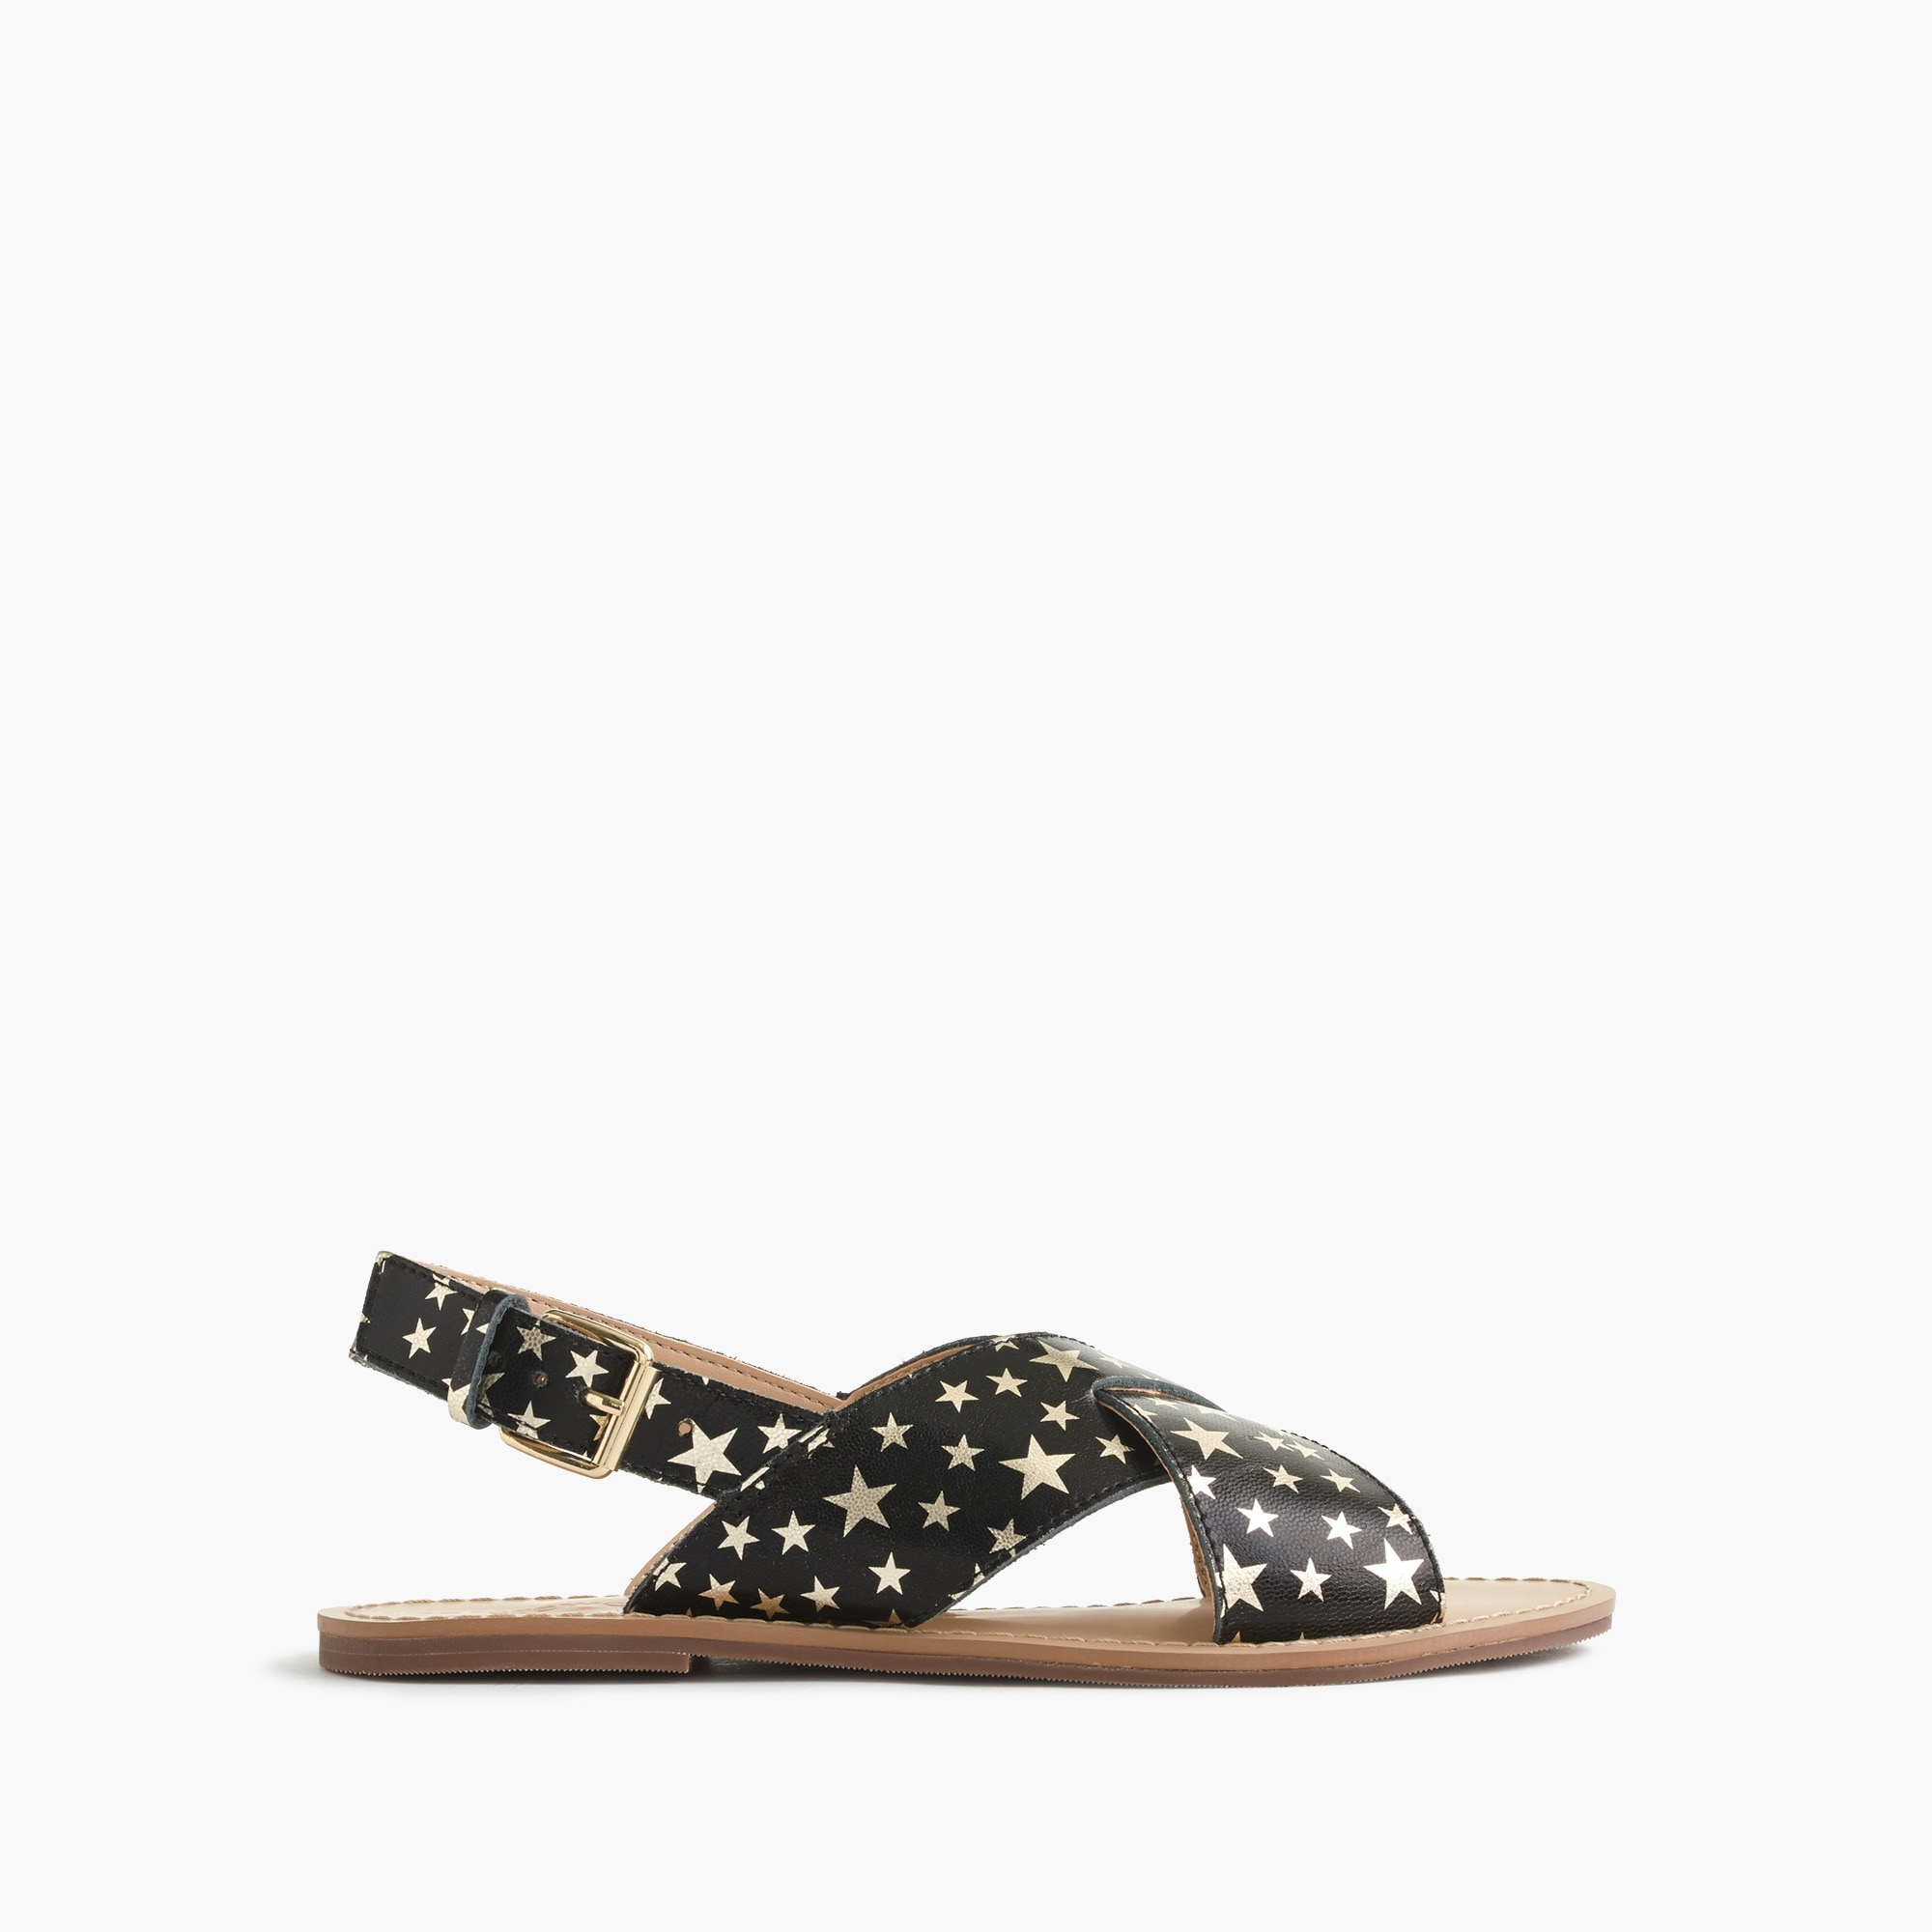 Girls' star-print Cyprus sandals